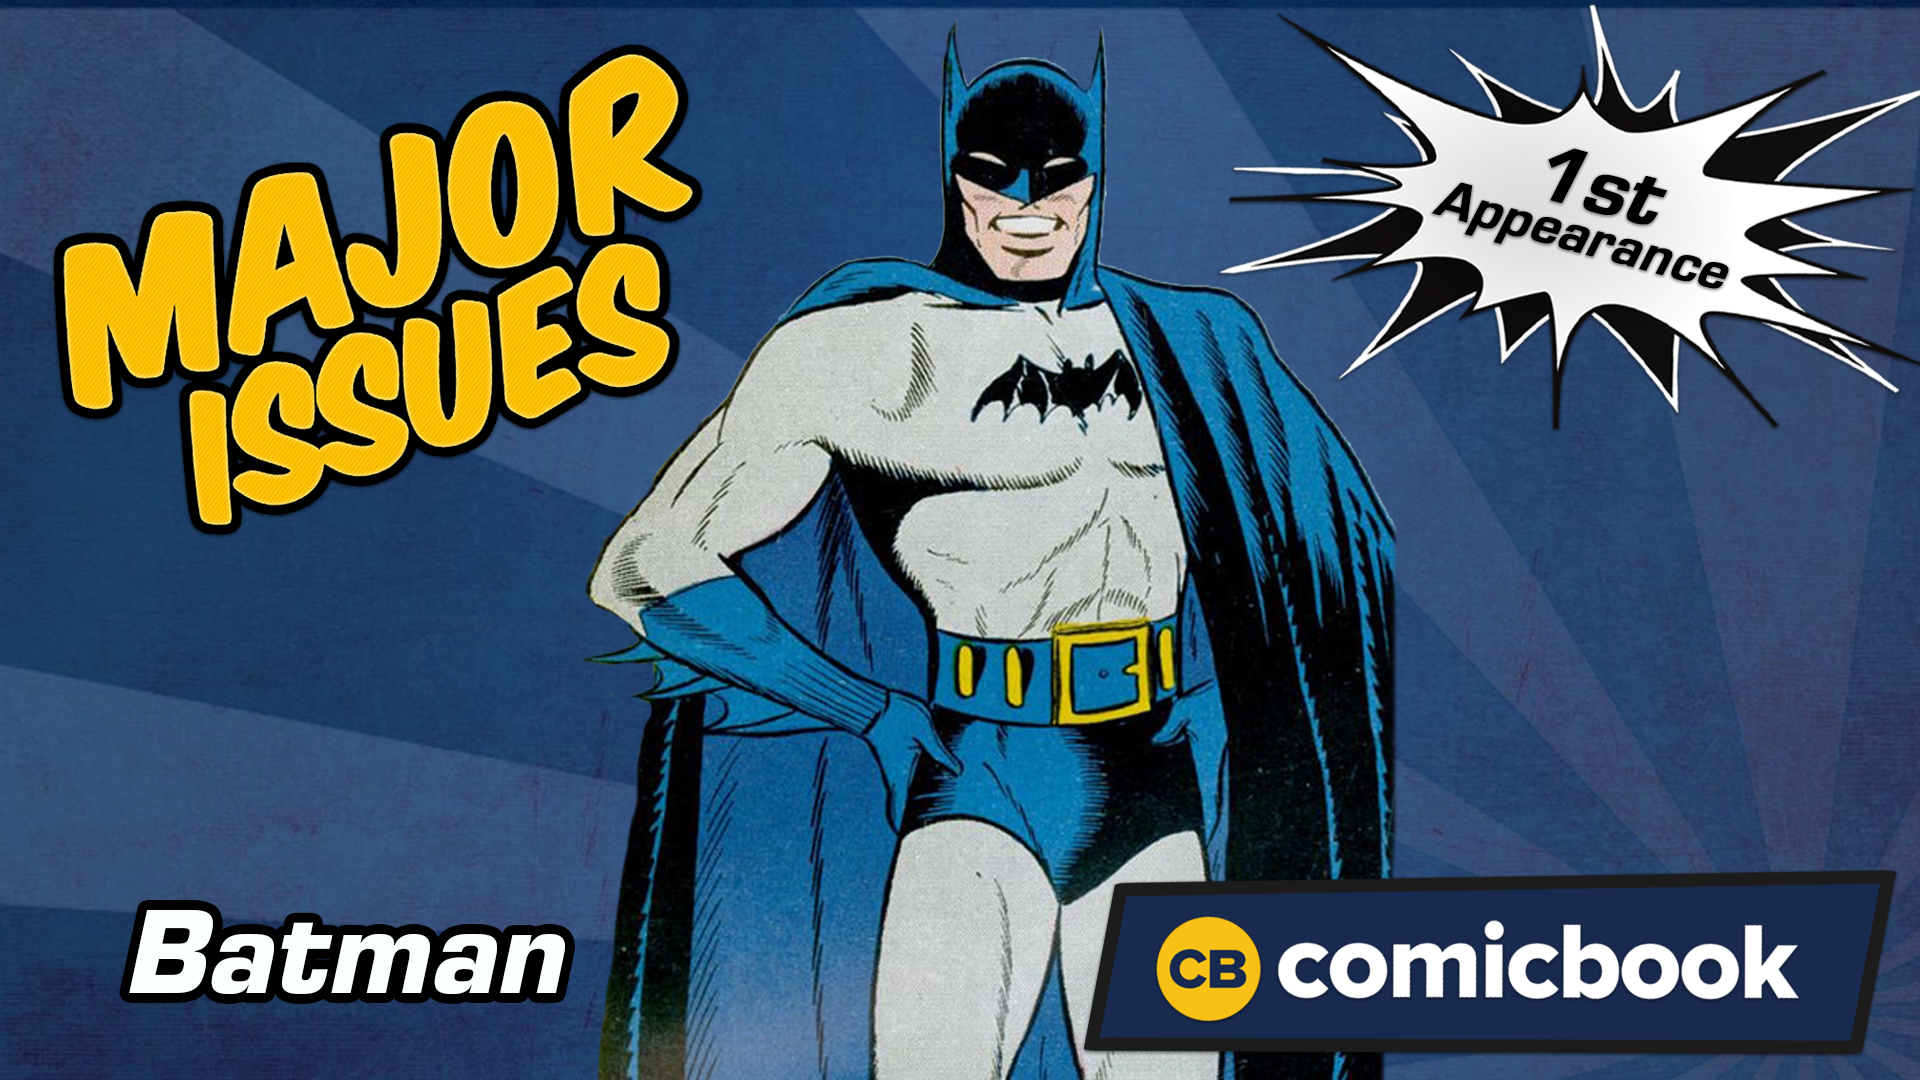 Batman's First Appearance - Major Issues screen capture